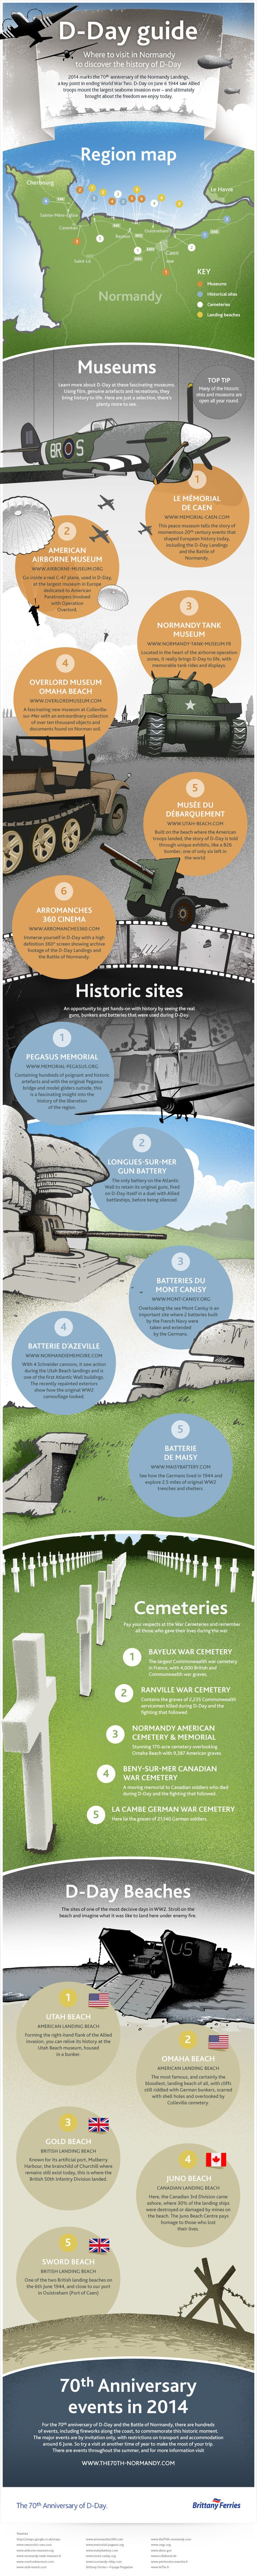 Where to Visit in Normany to Discover the History of D-Day | Made From History